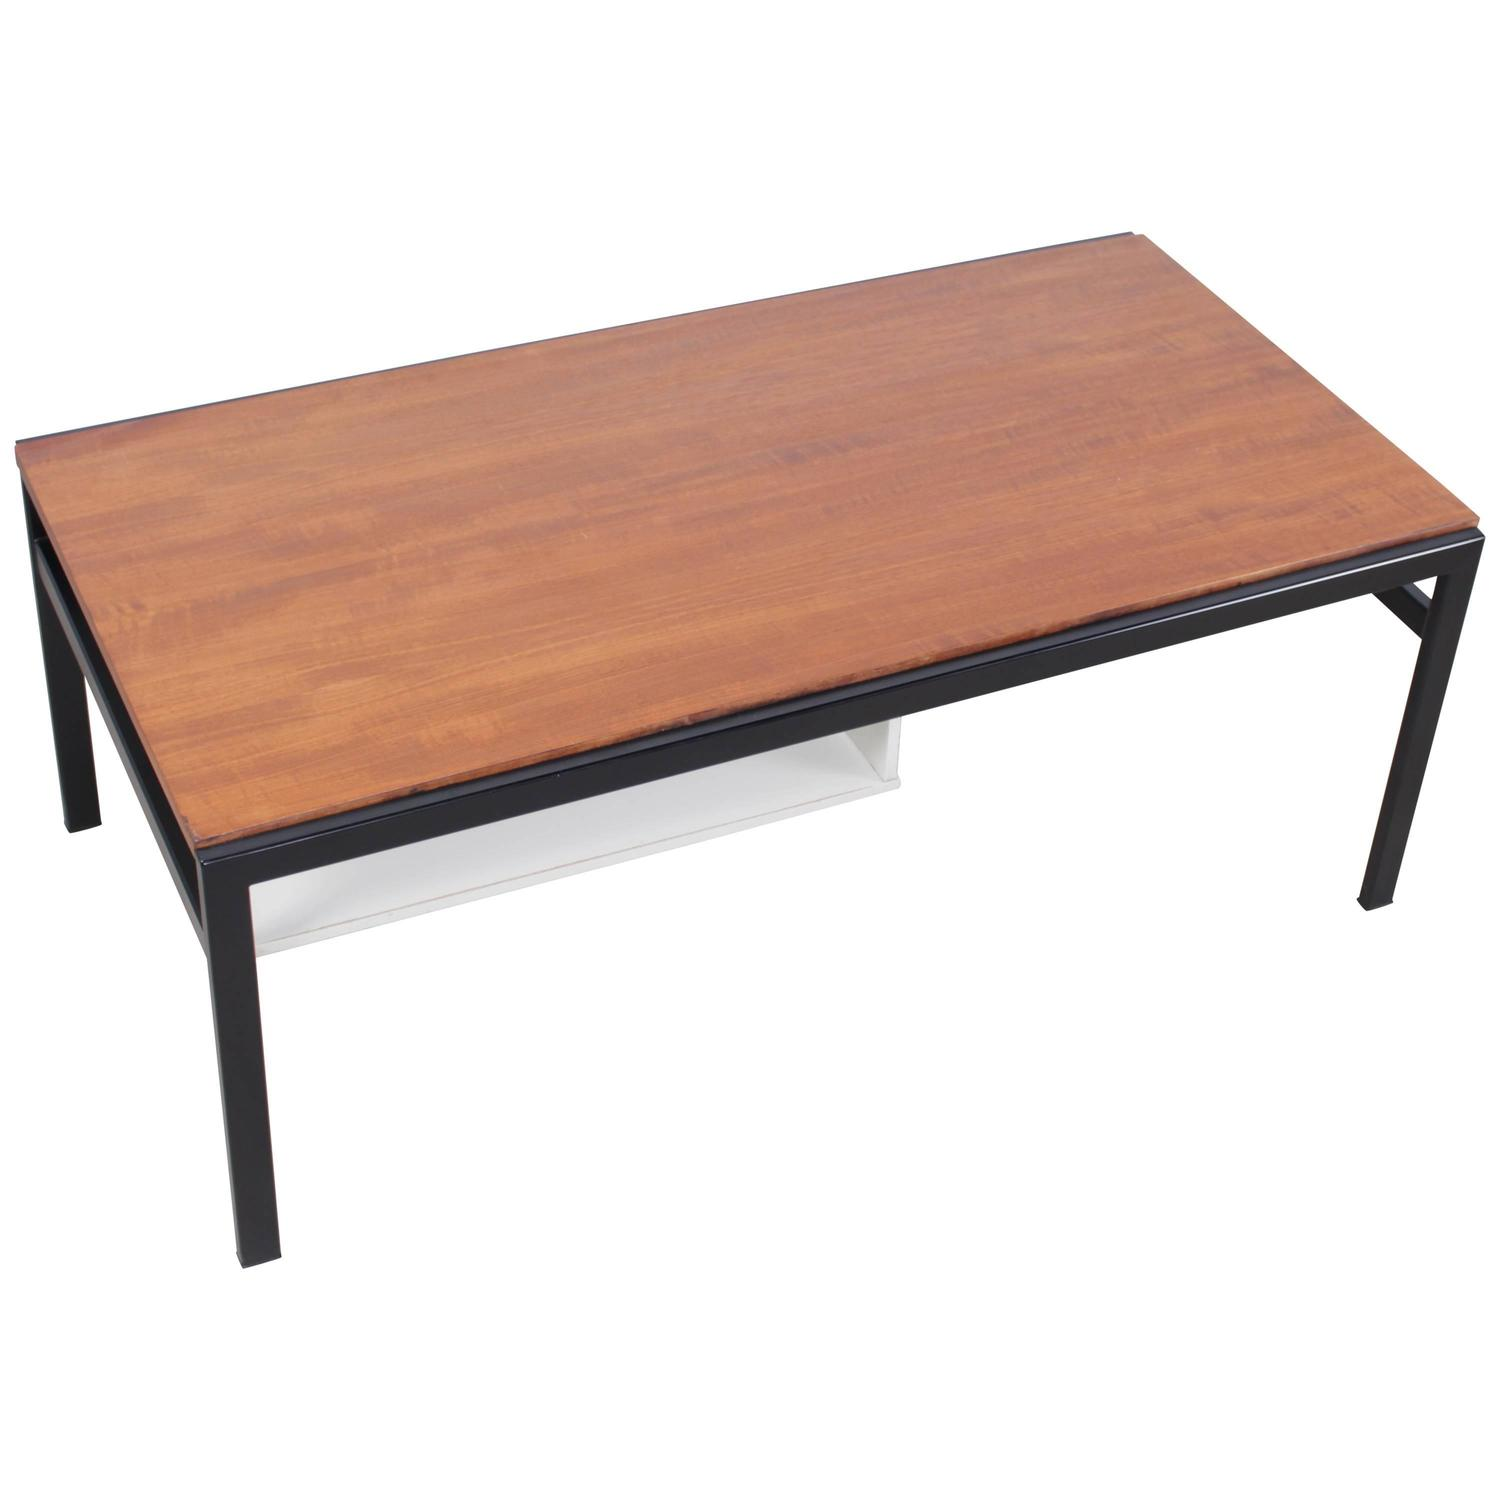 Japanese Coffee Tables Cees Braakman Pastoe Reversible Coffee Table Japanese Series For